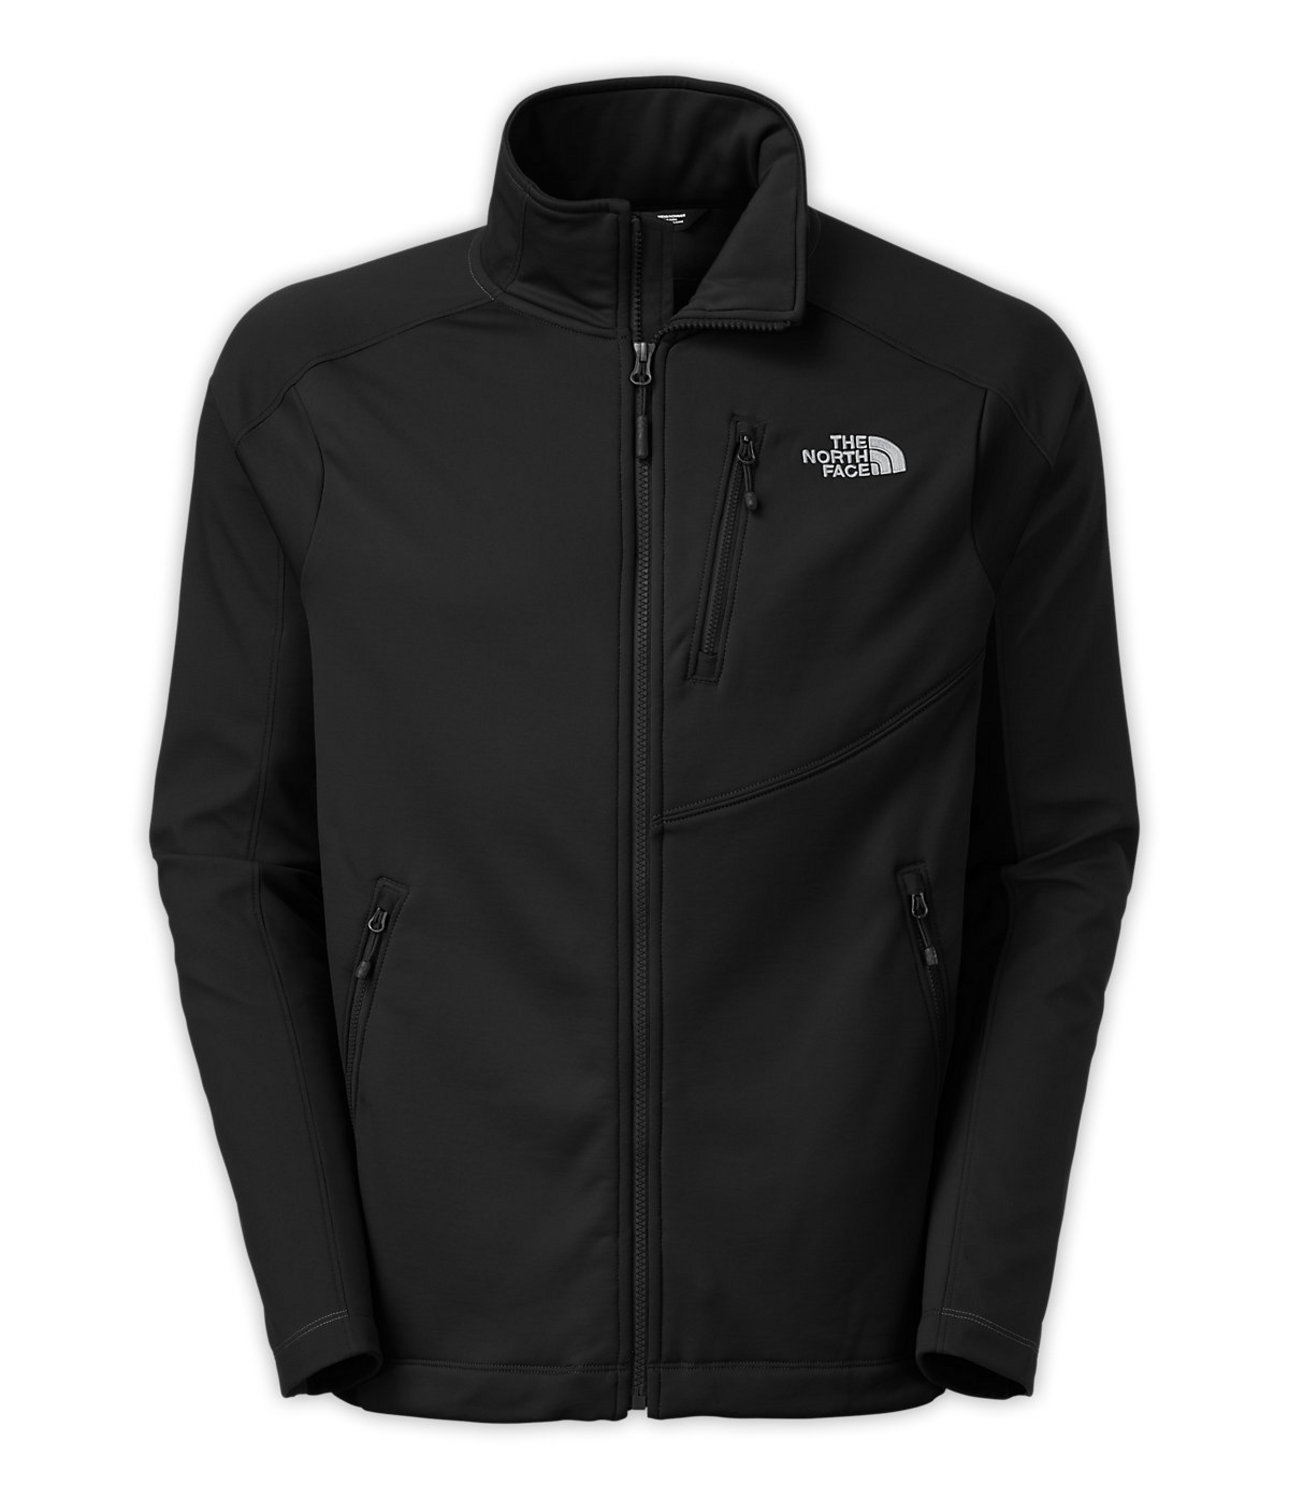 The North Face Men's Tenacious Hybrid Full Zip